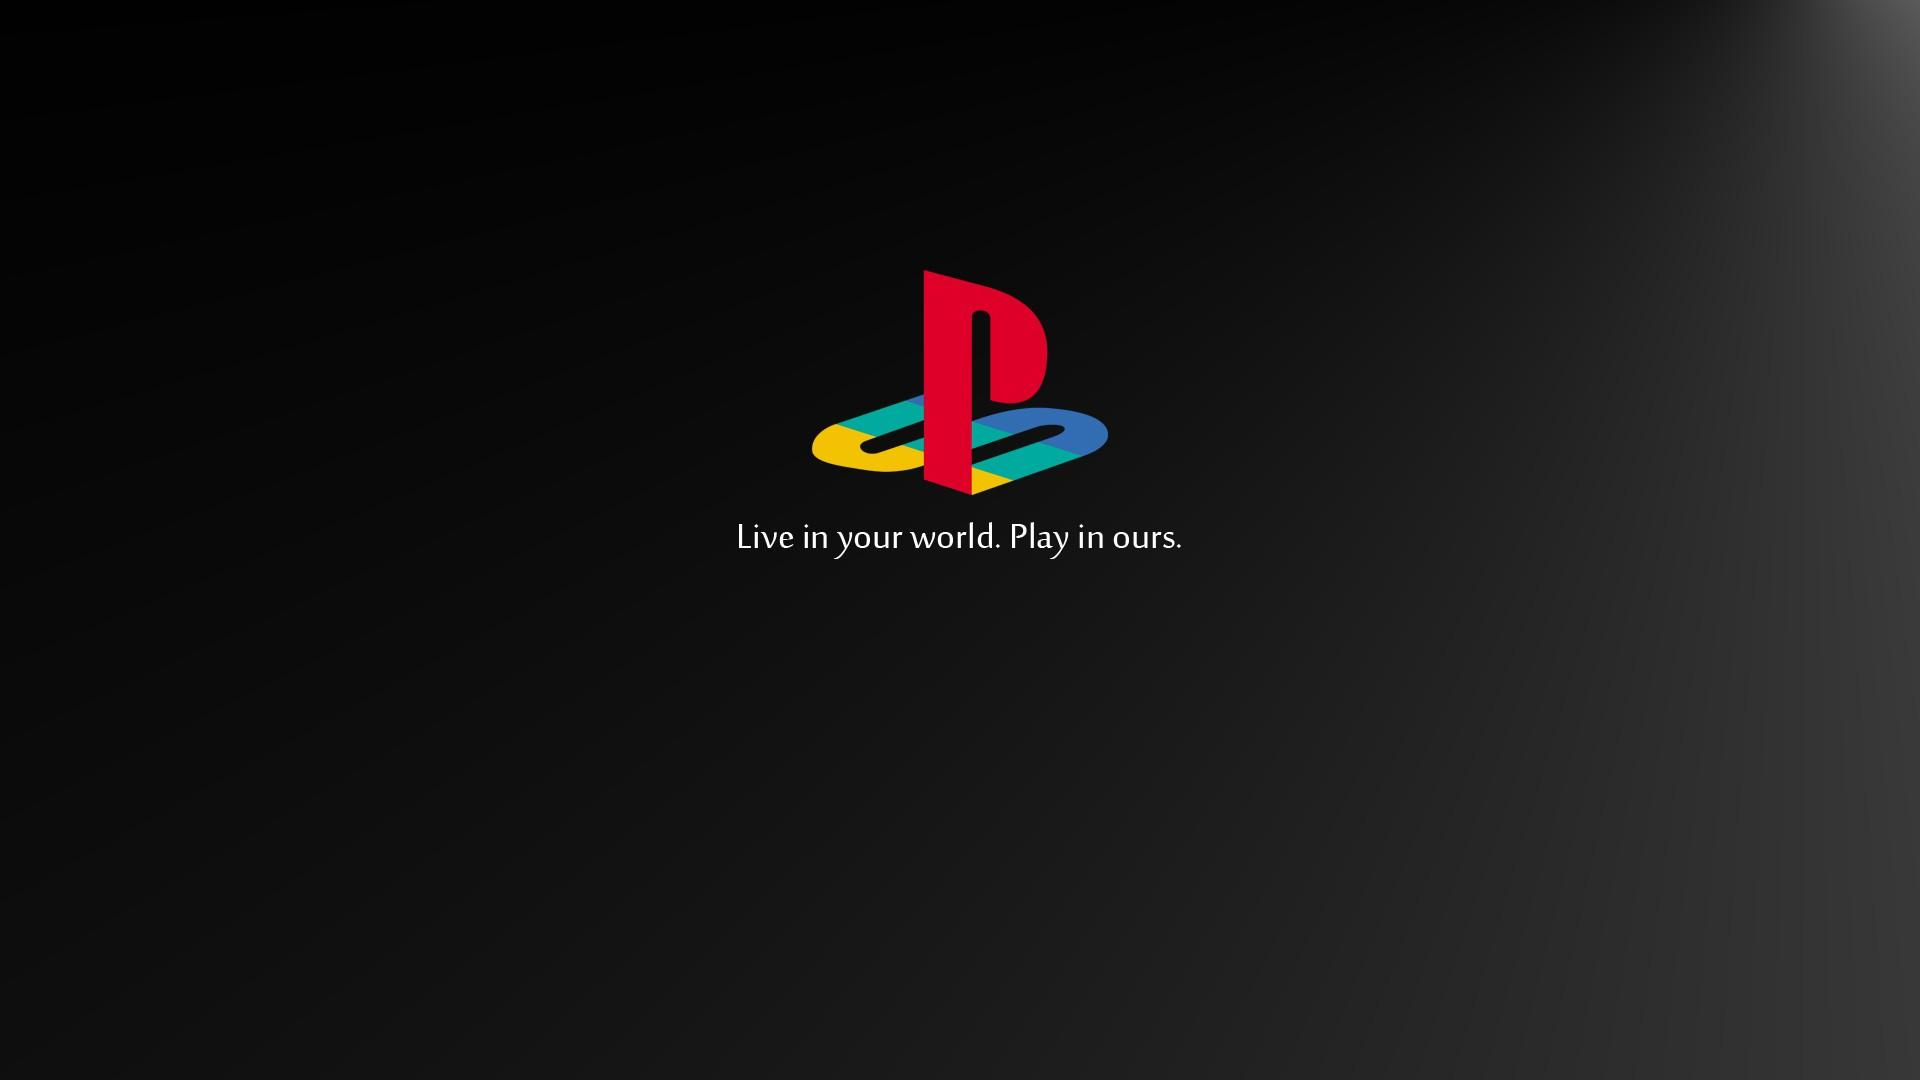 PS4 wallpaper image 1920x1080 1080p hd wallpaper download,background image,wallpaper and Online Stock Photo Images